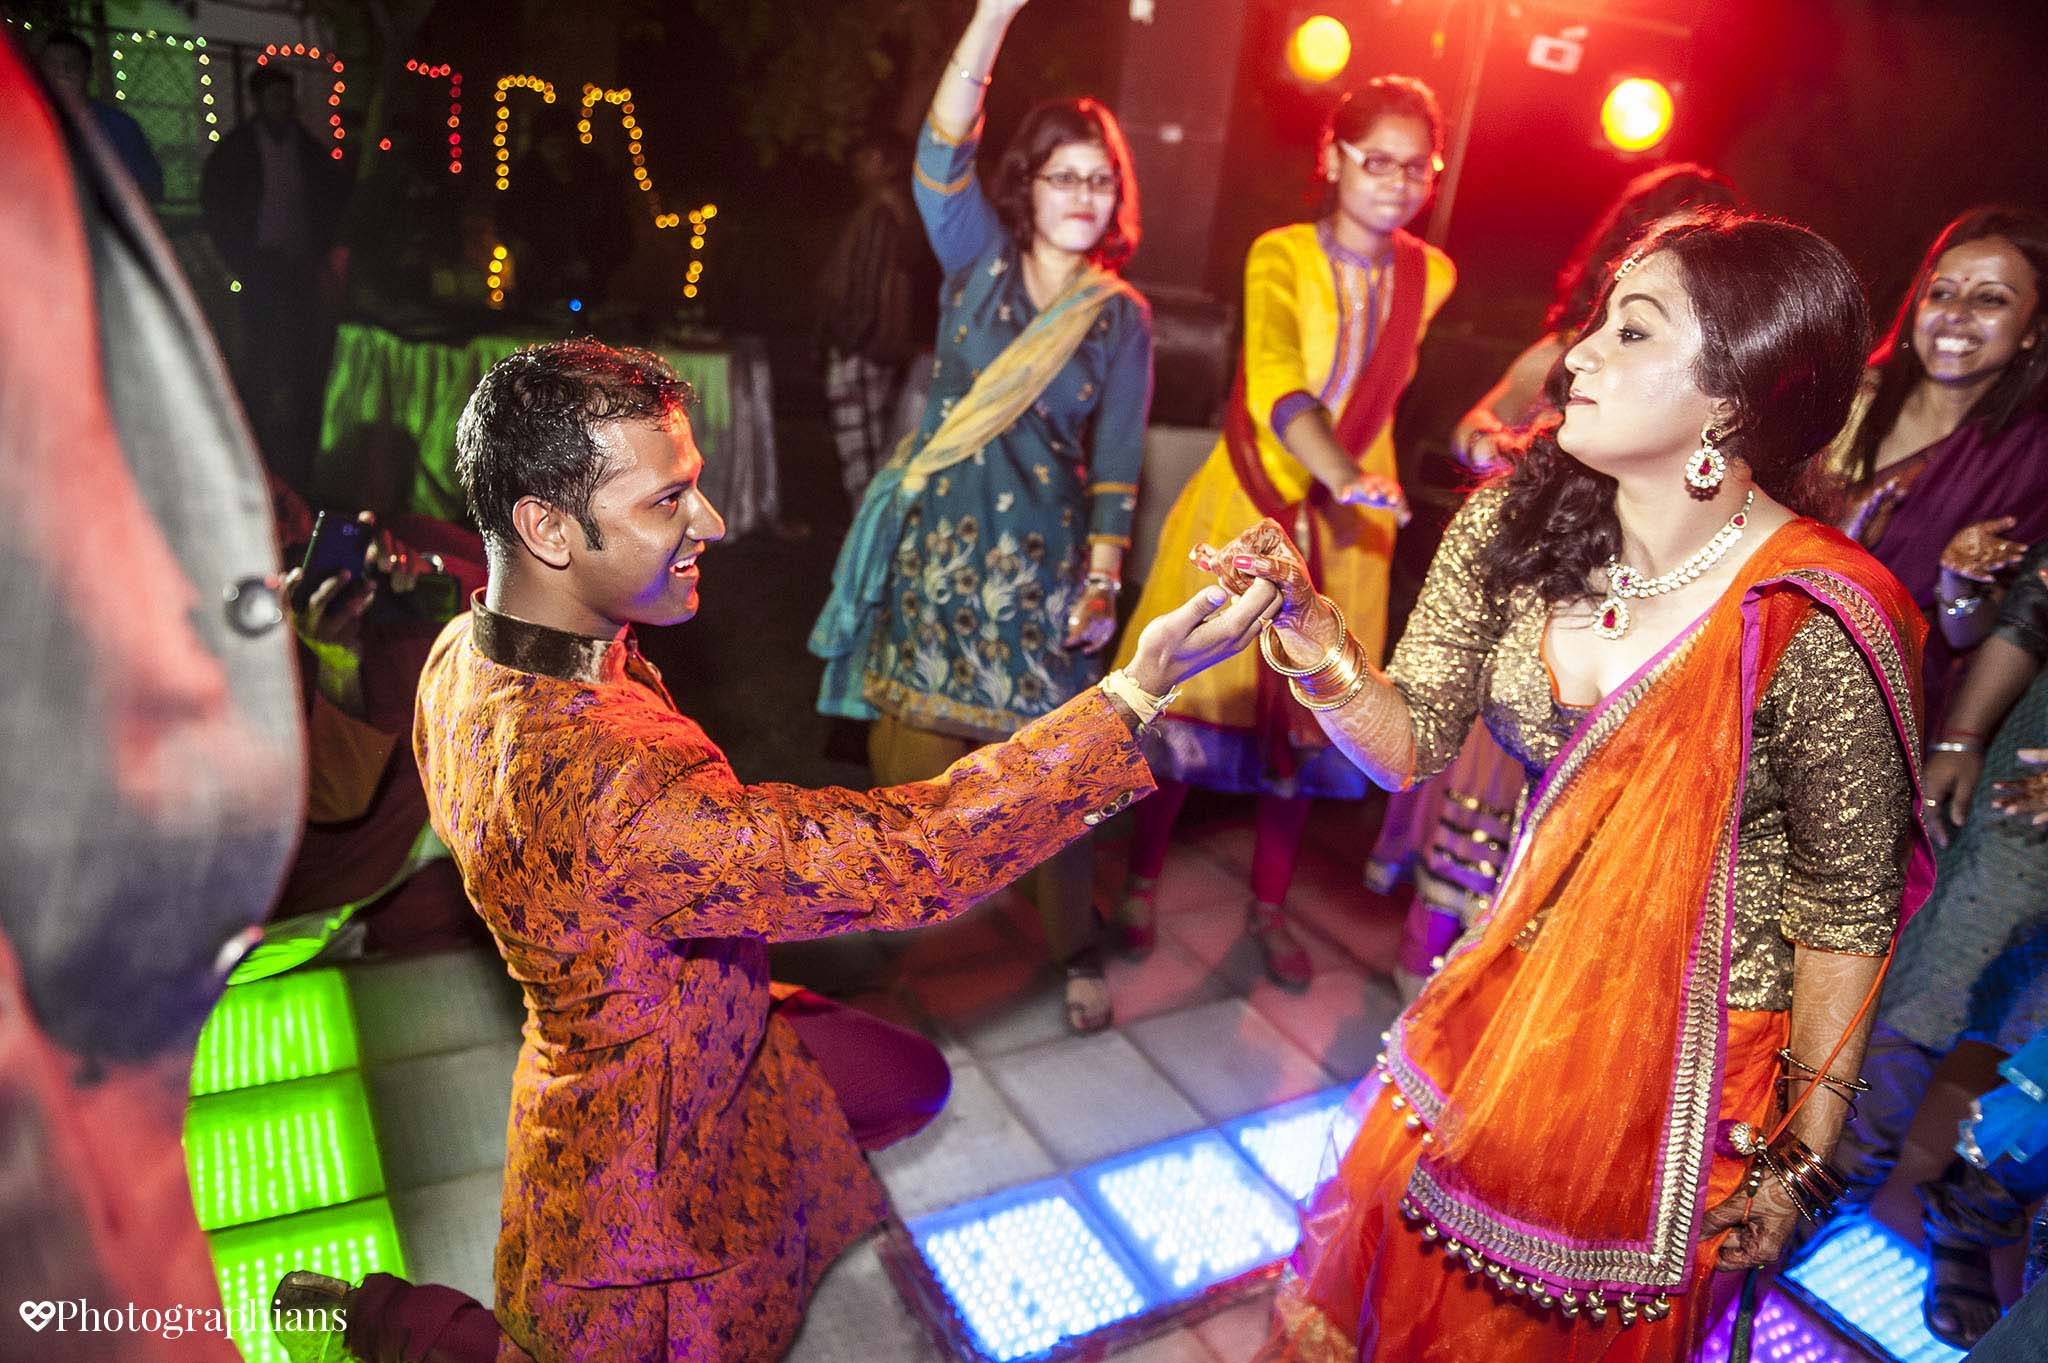 Photographians_Indian_Destination_Wedding_127